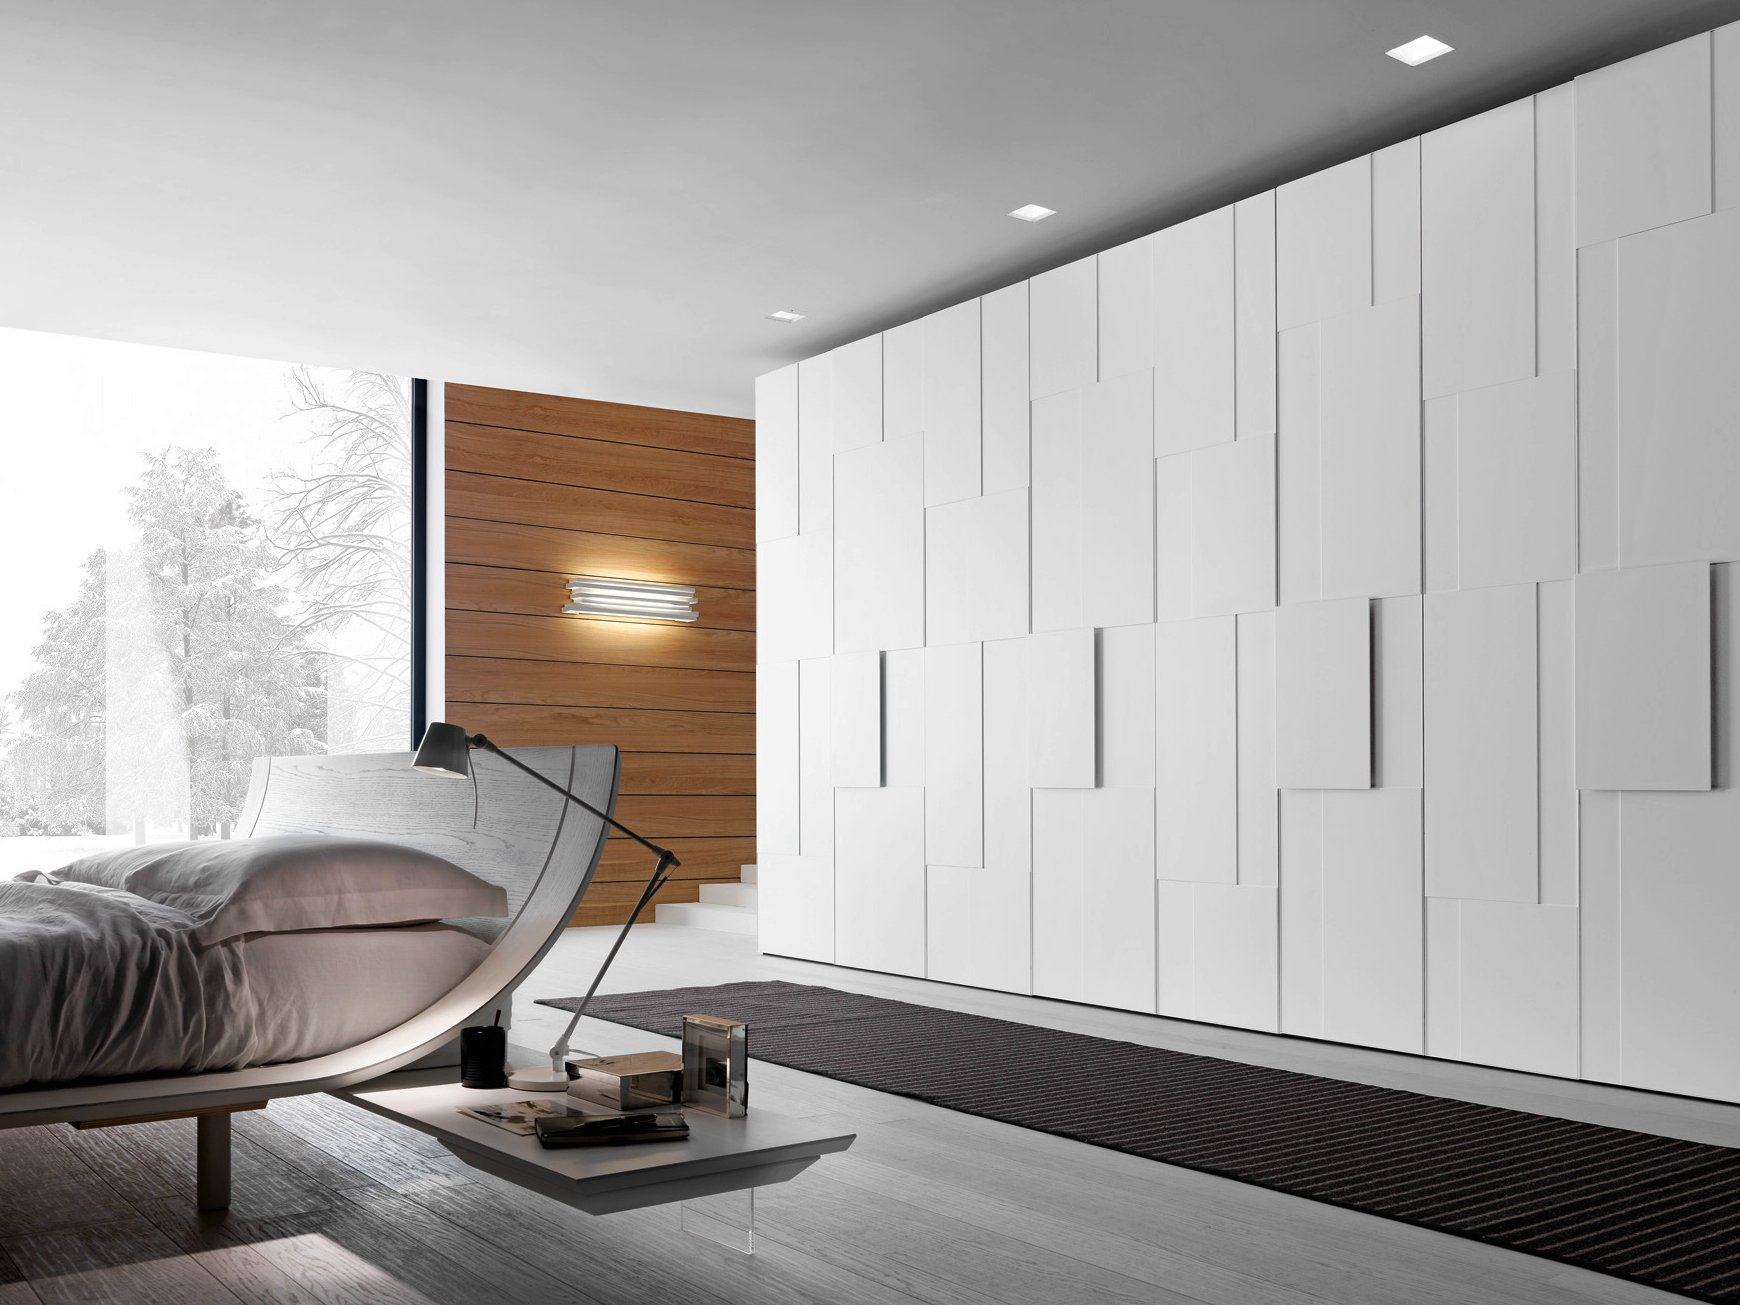 Sectional lacquered wardrobe tecnopolis anta step by for Www presotto it